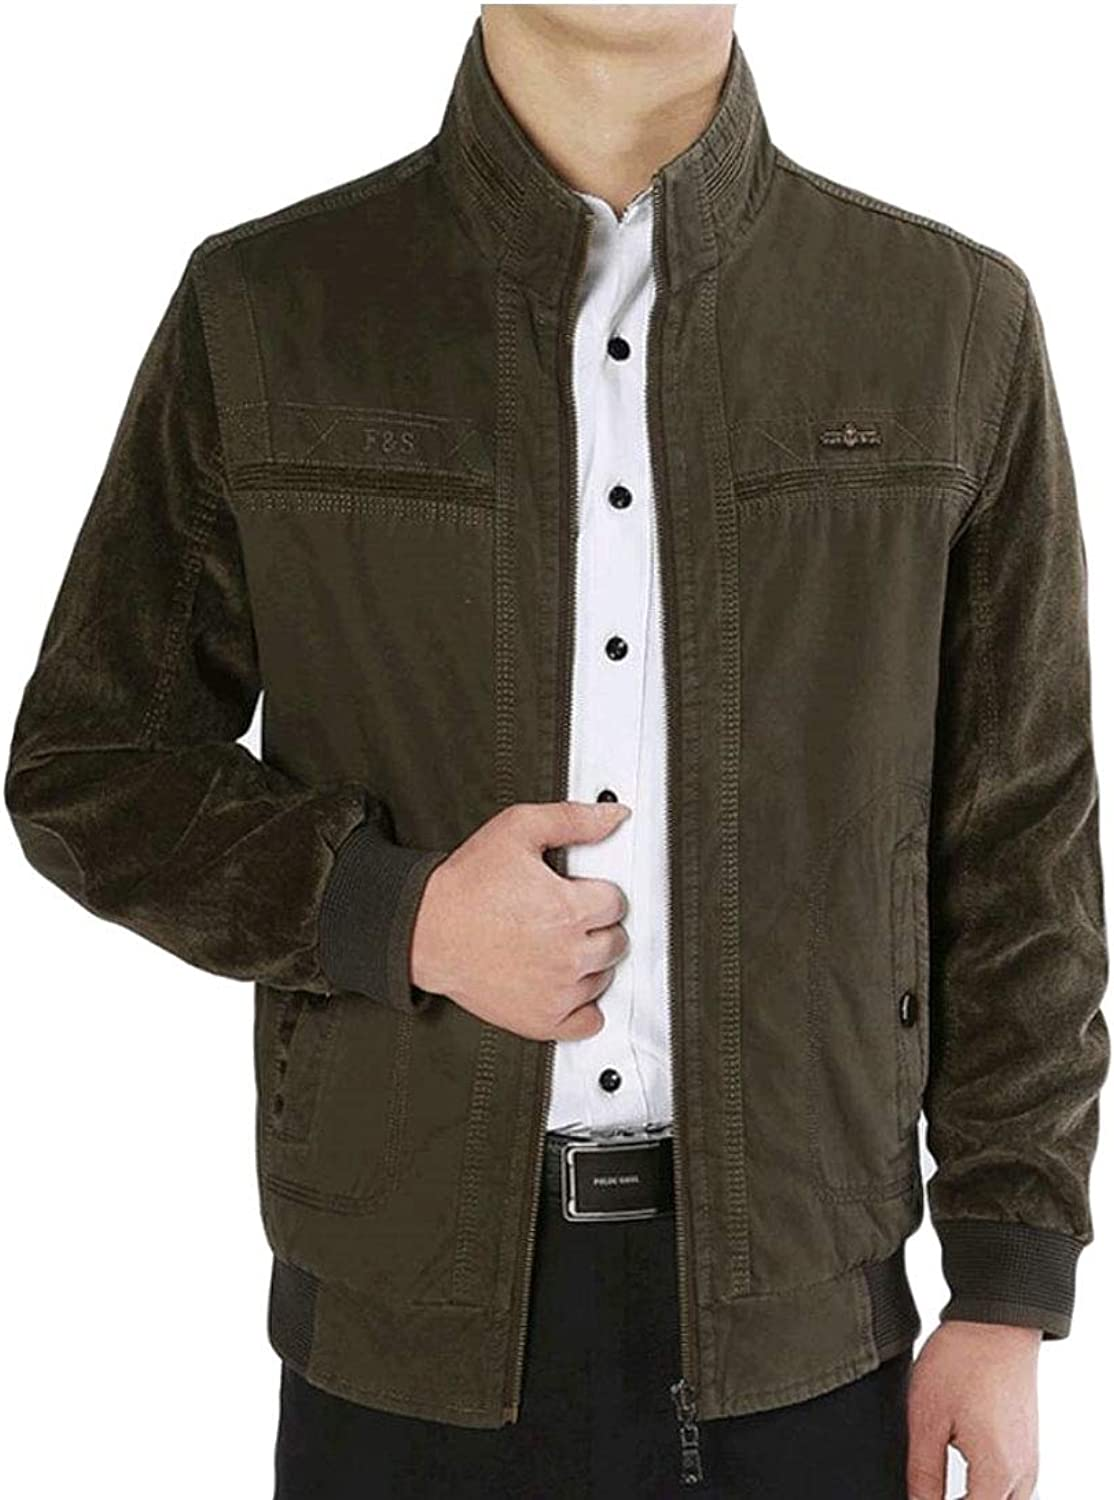 Xswsy XG-CA Men's Stand Collar Corduroy Lightweight Zip Reversible Slim Fit Jackets